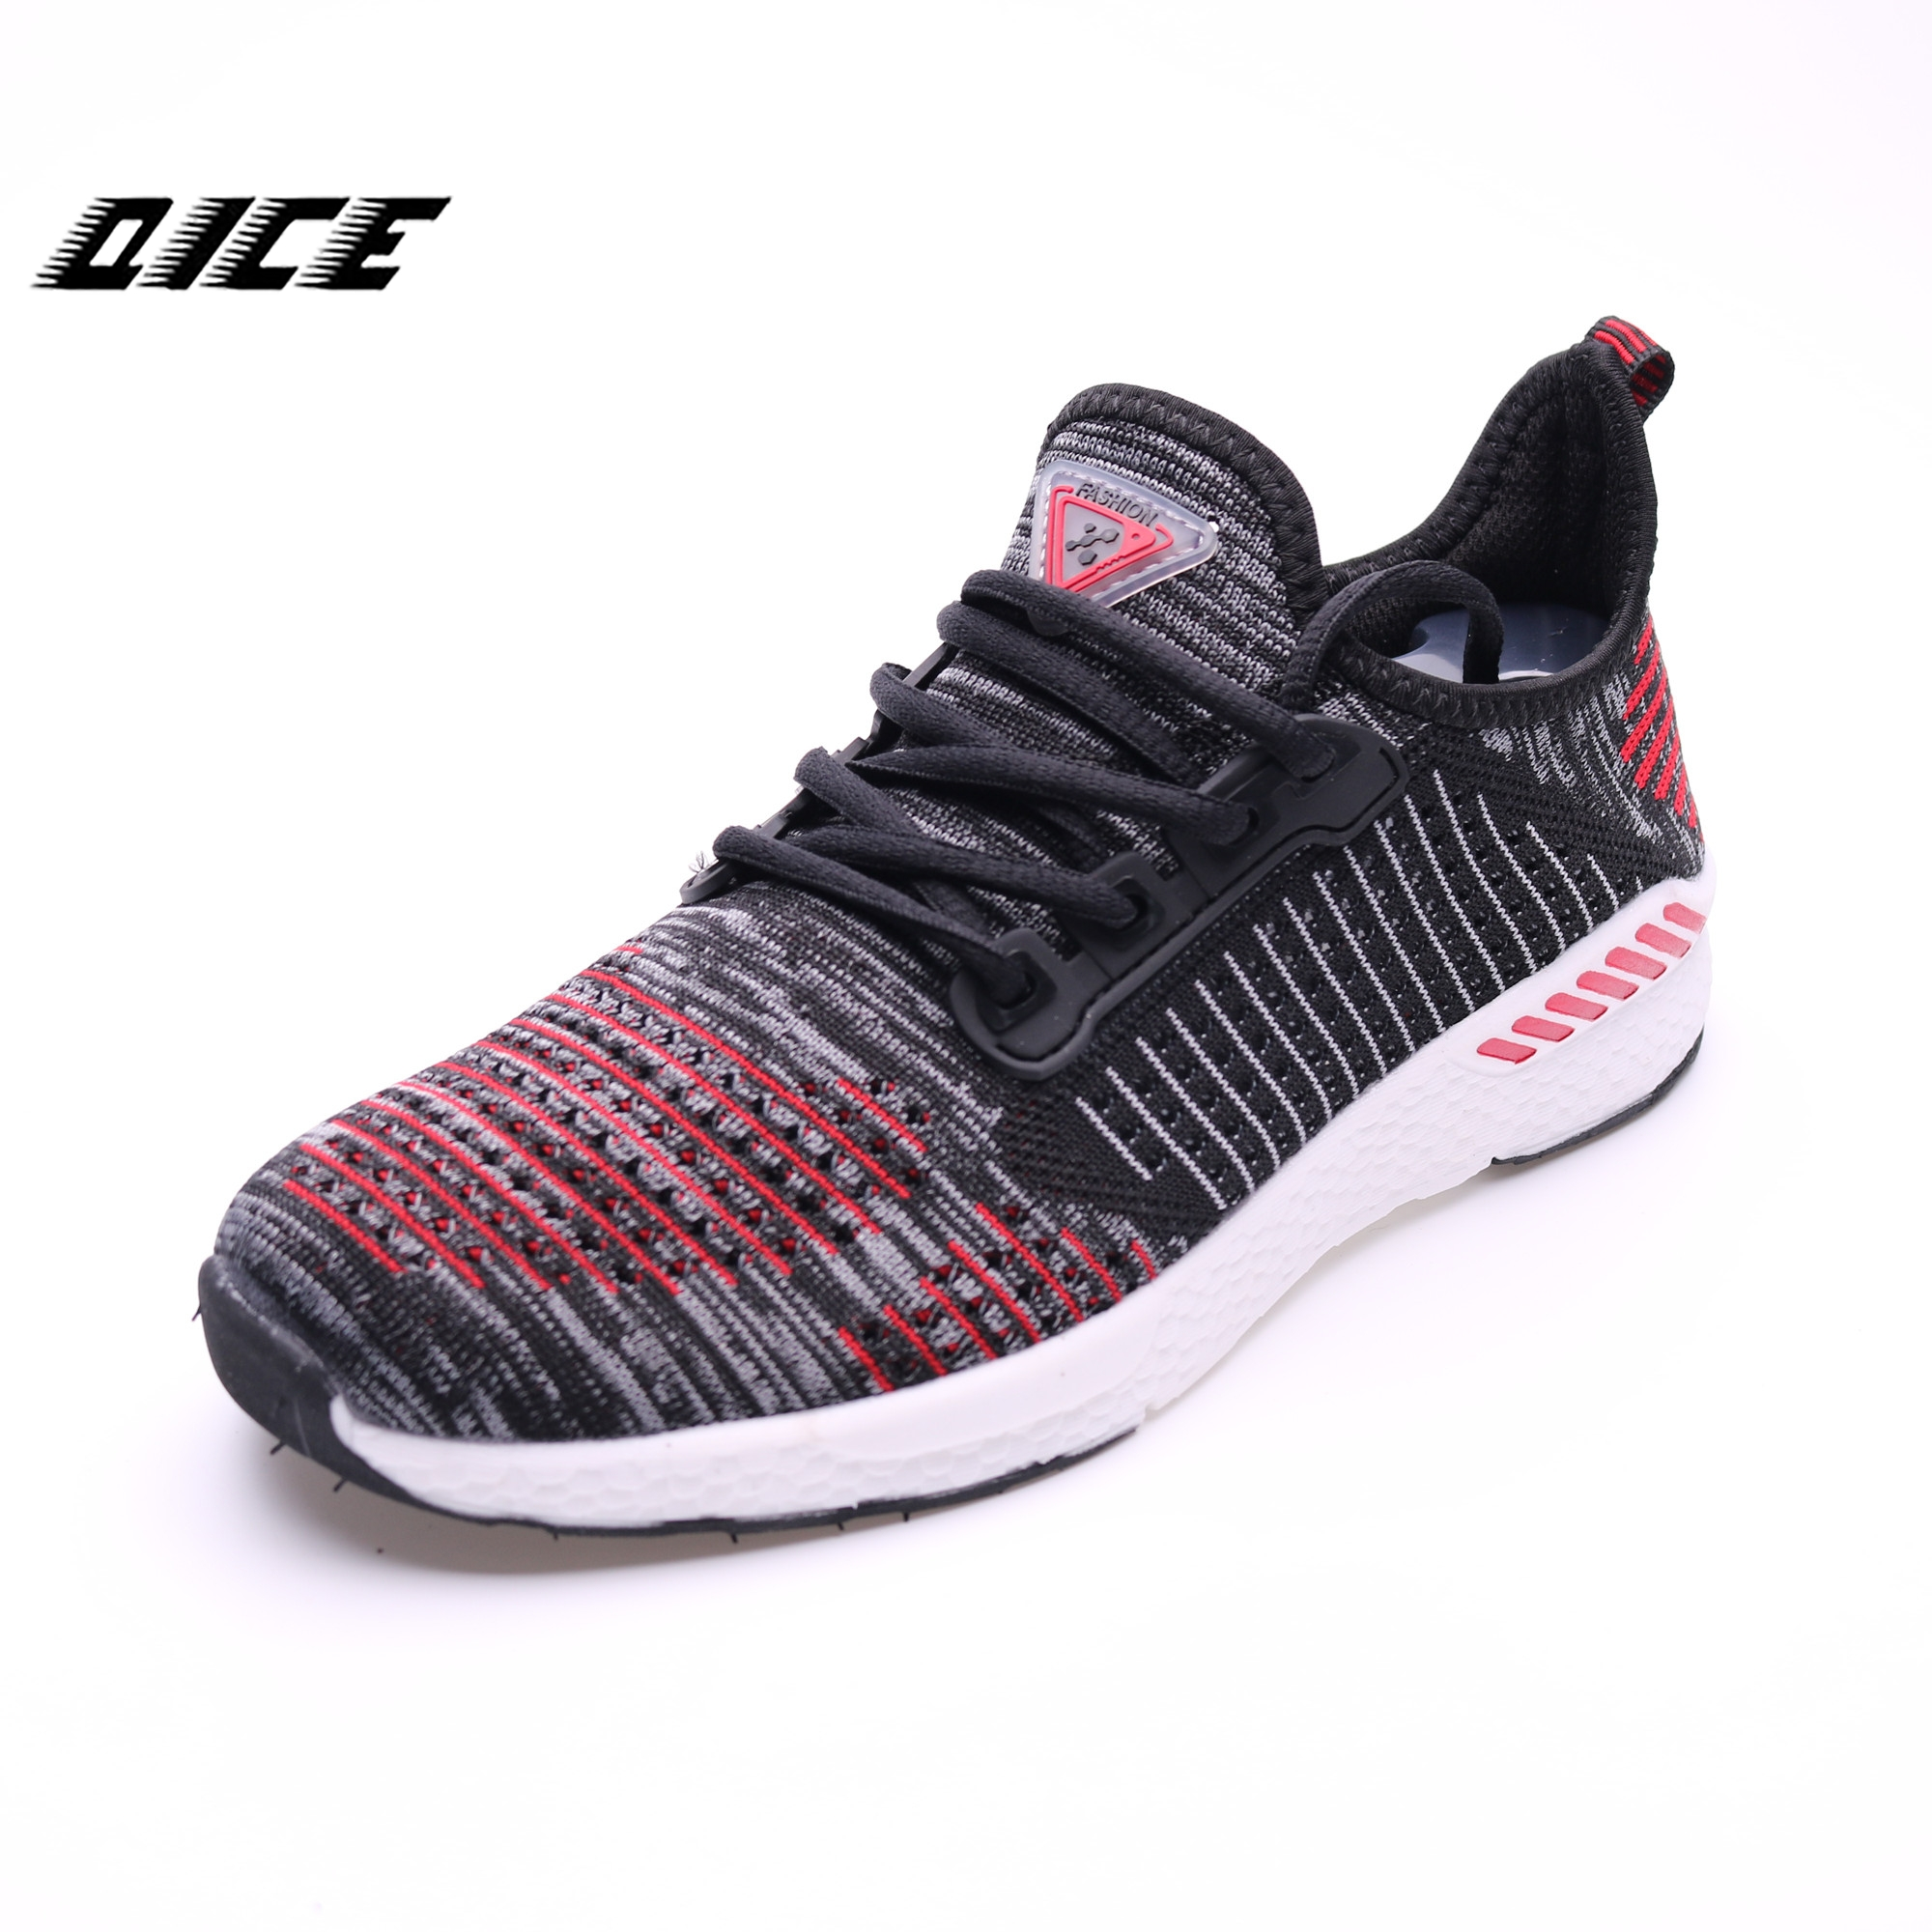 2017 Men Women Running Shoes Damping Outdoor Sport Shoes for Male Training Sneakers Jogging Walking Shoes Size 36-46